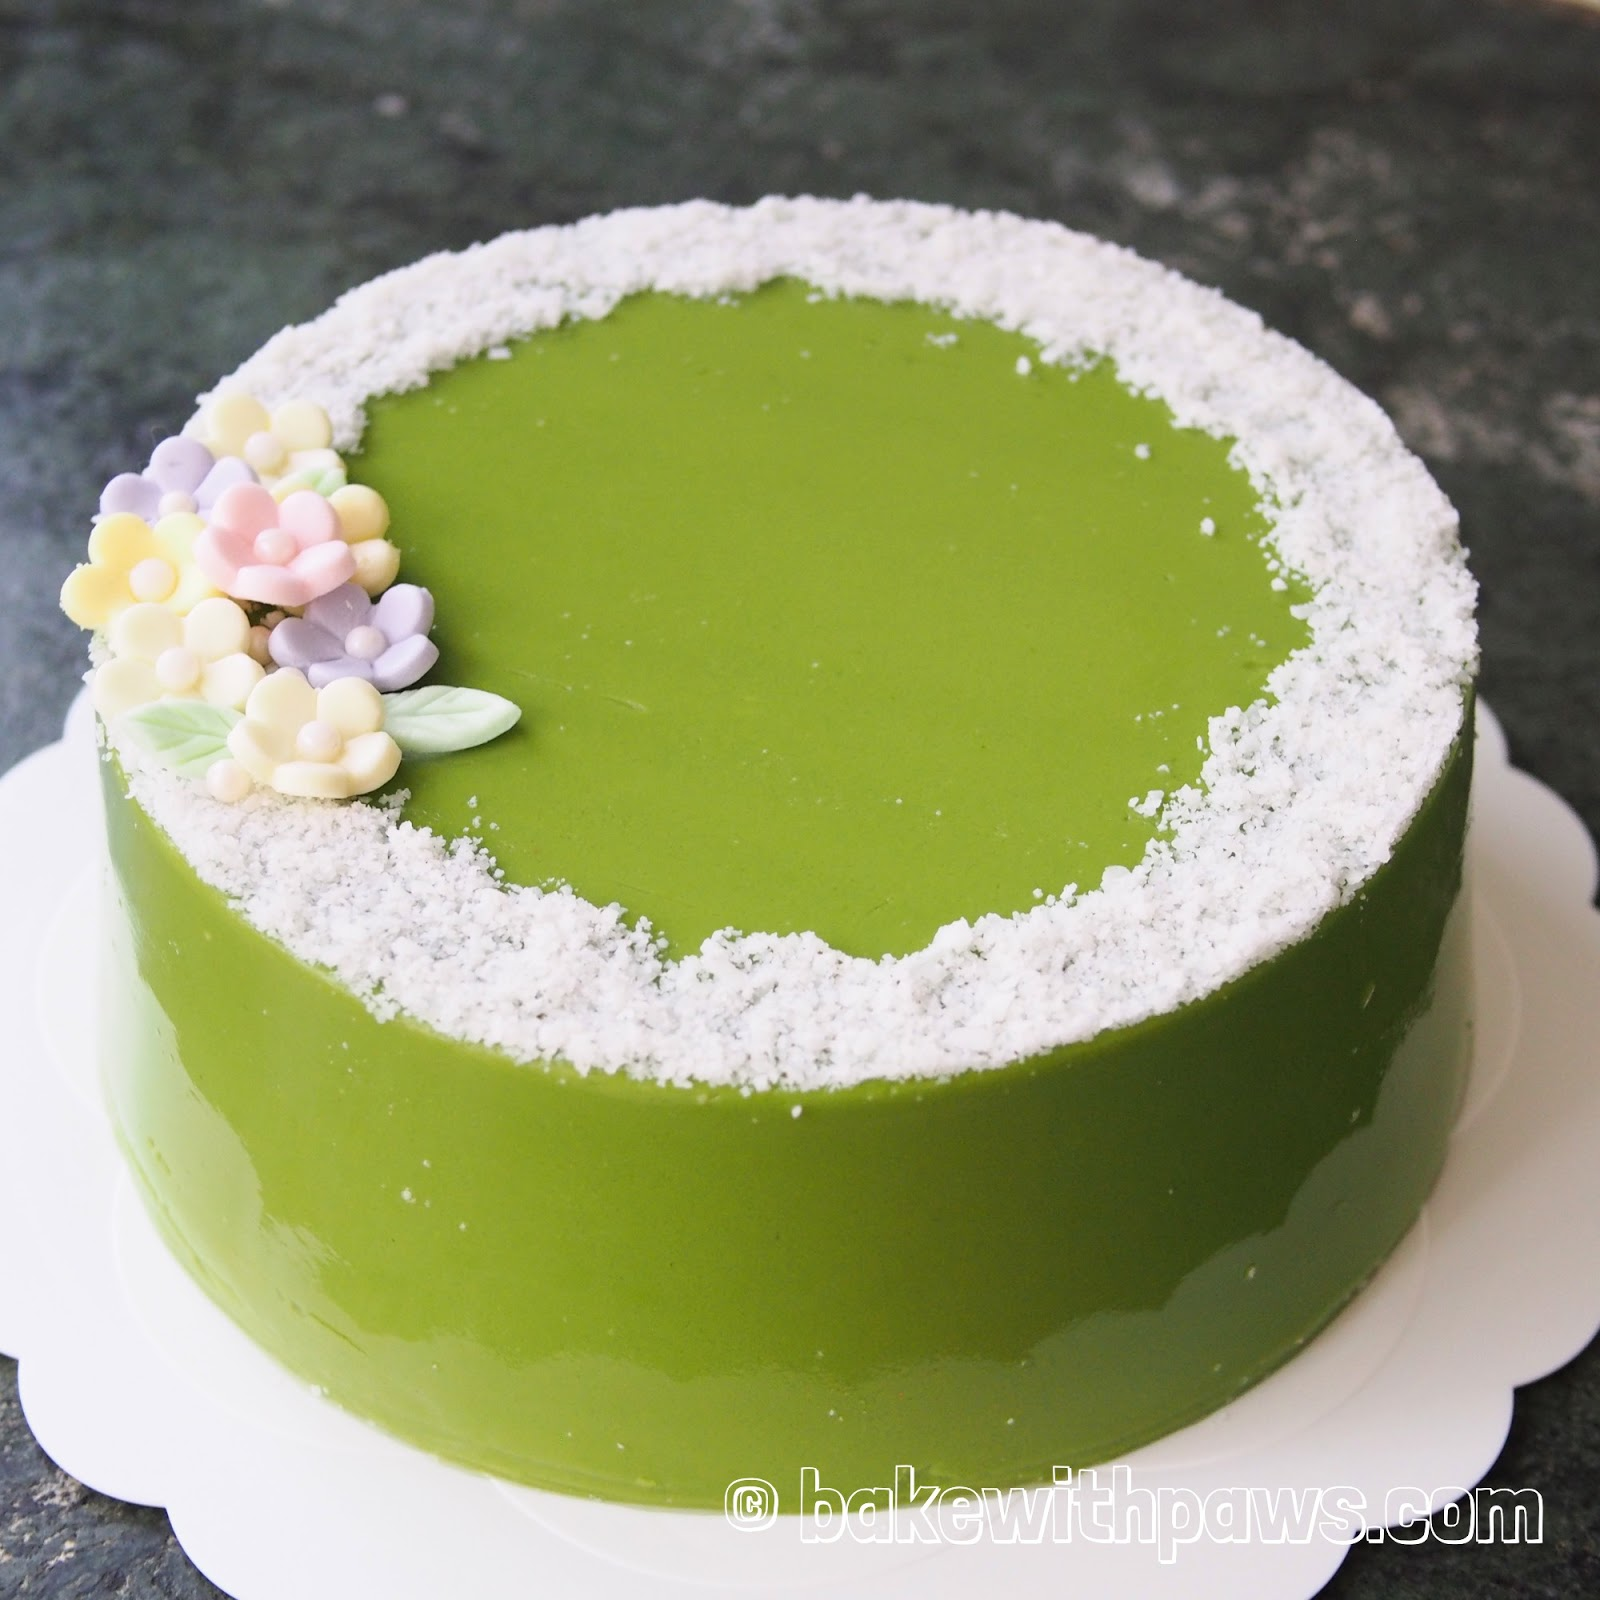 Swell Pandan Custard Layered Cake Bake With Paws Birthday Cards Printable Nowaargucafe Filternl